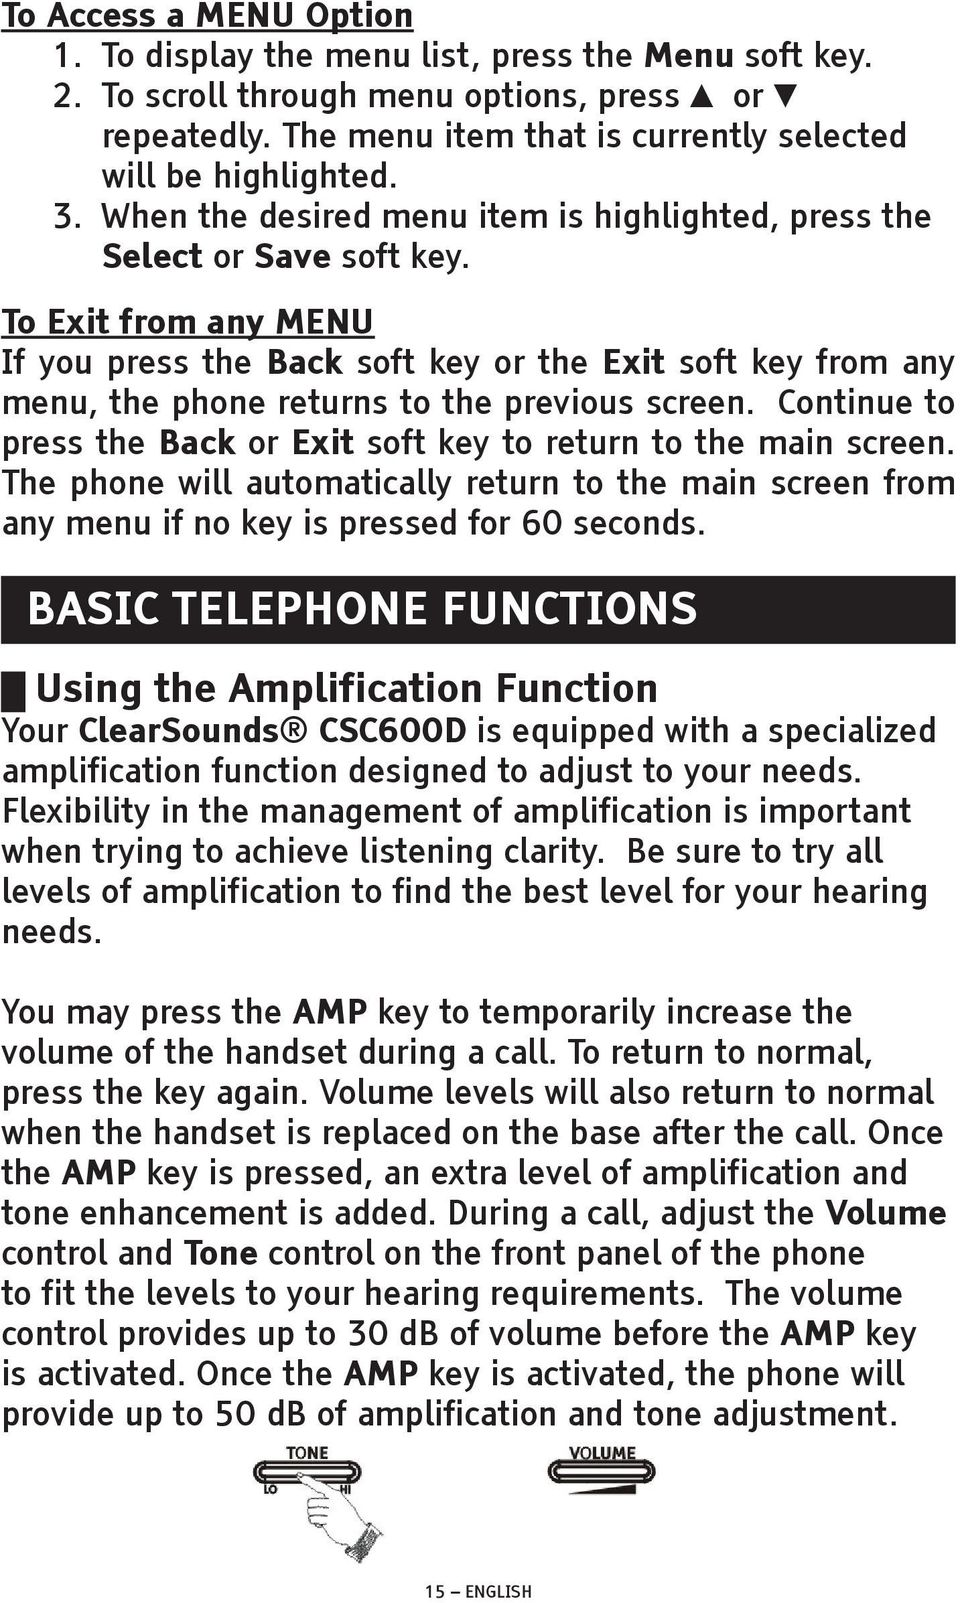 To Exit from any MENU If you press the Back soft key or the Exit soft key from any menu, the phone returns to the previous screen.